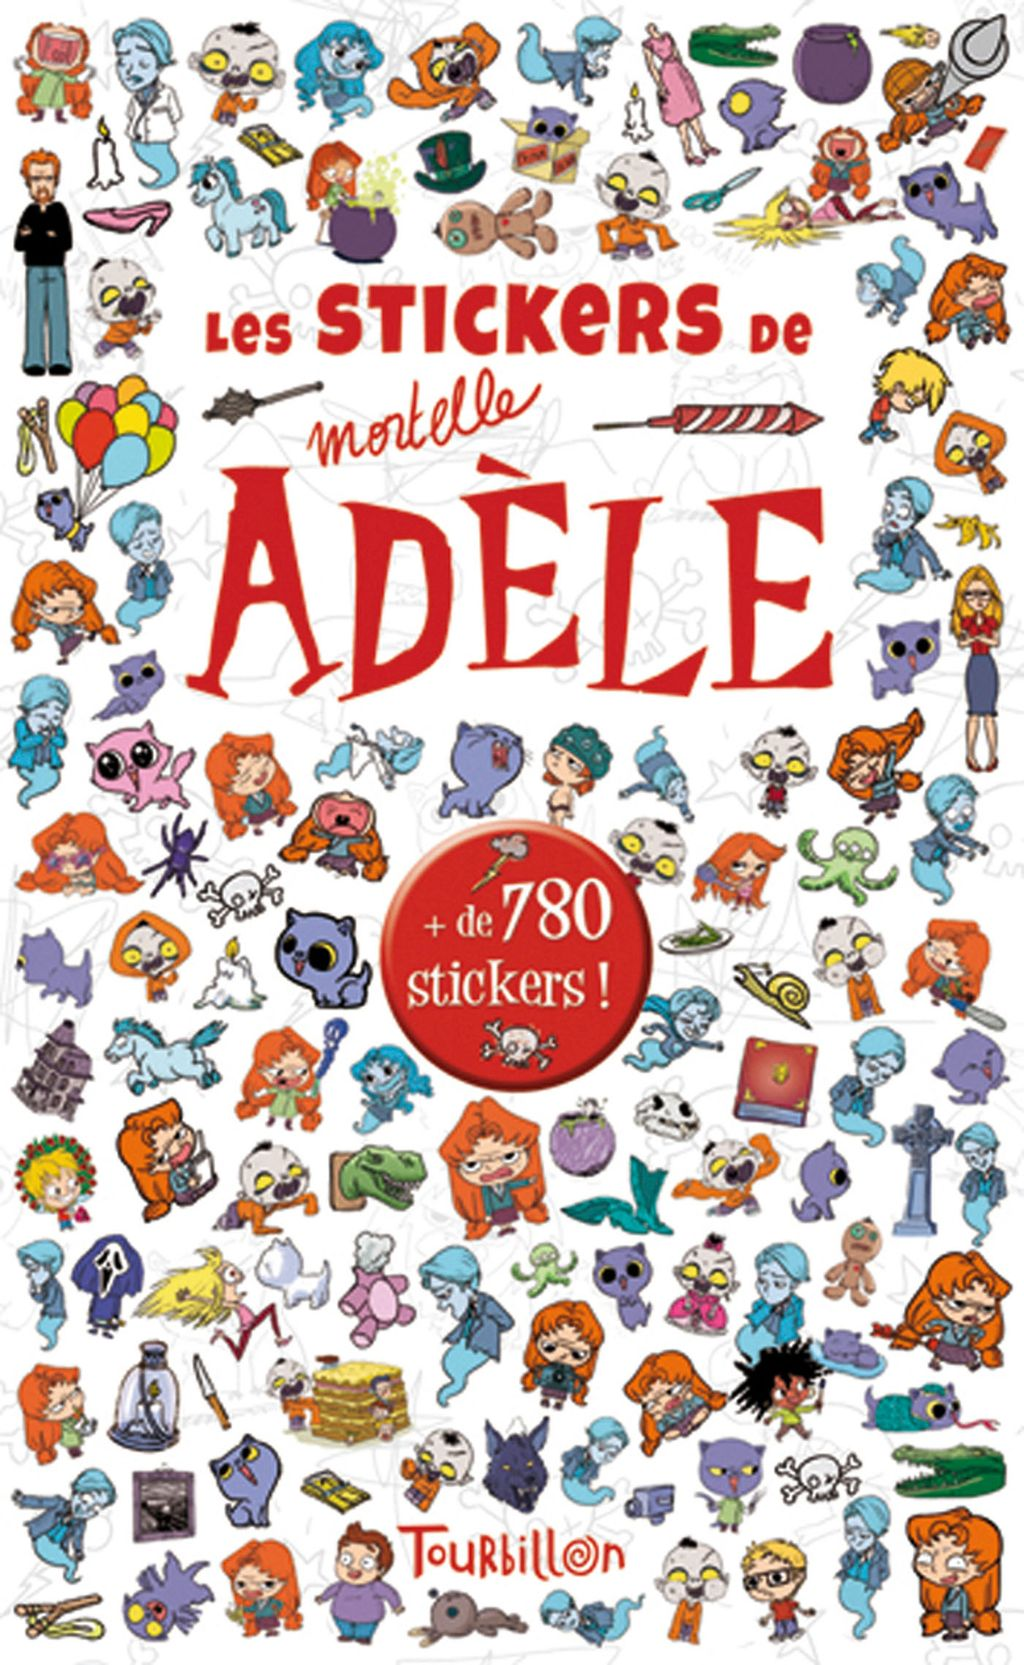 « Stickers Mortelle Adèle » cover